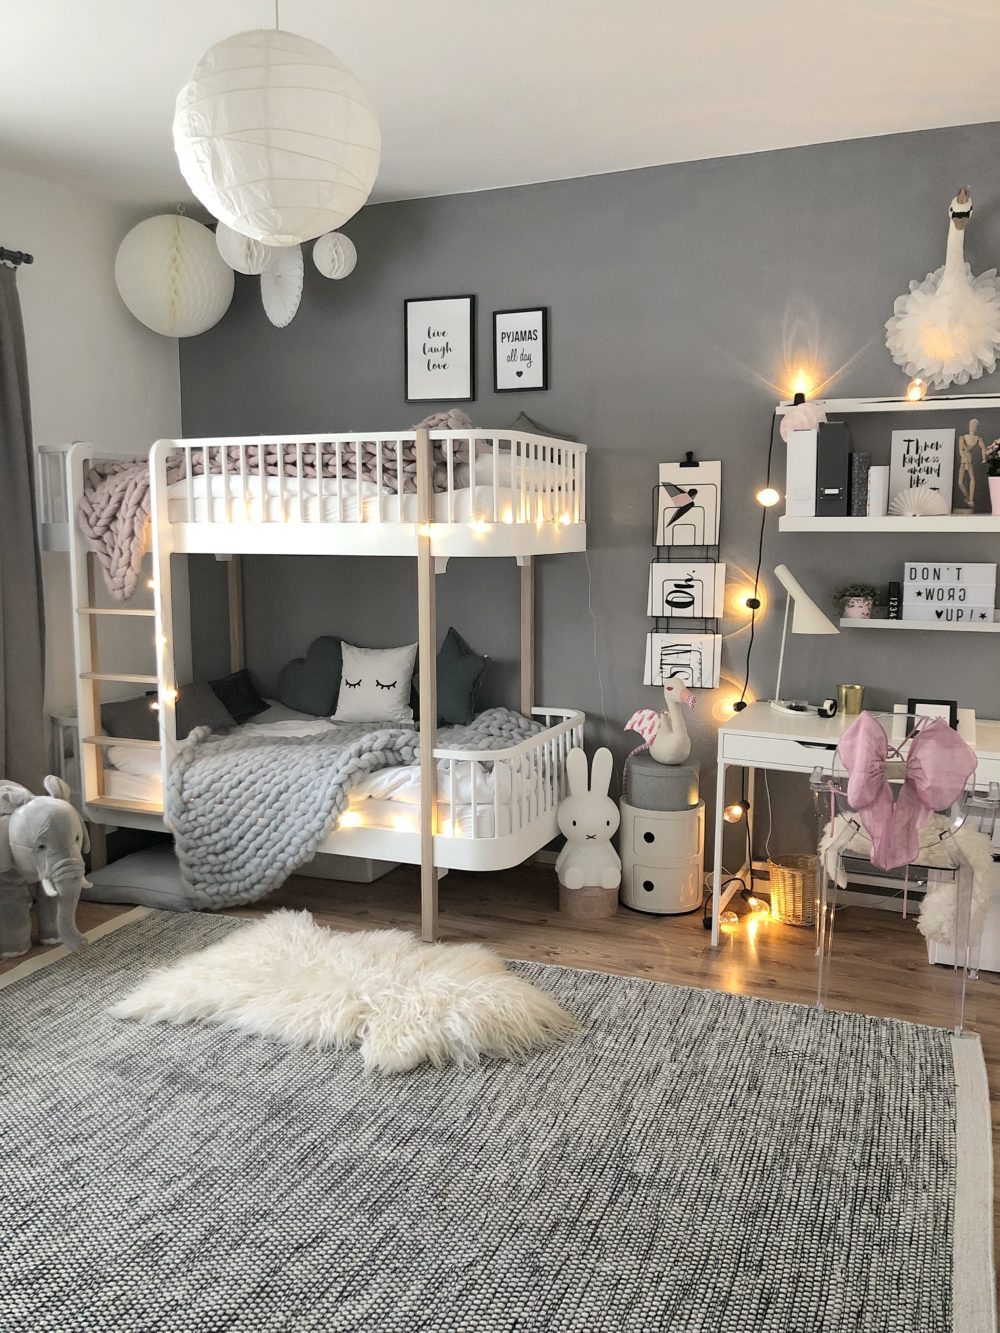 kinderzimmer vorher und nachher easyinterieur. Black Bedroom Furniture Sets. Home Design Ideas